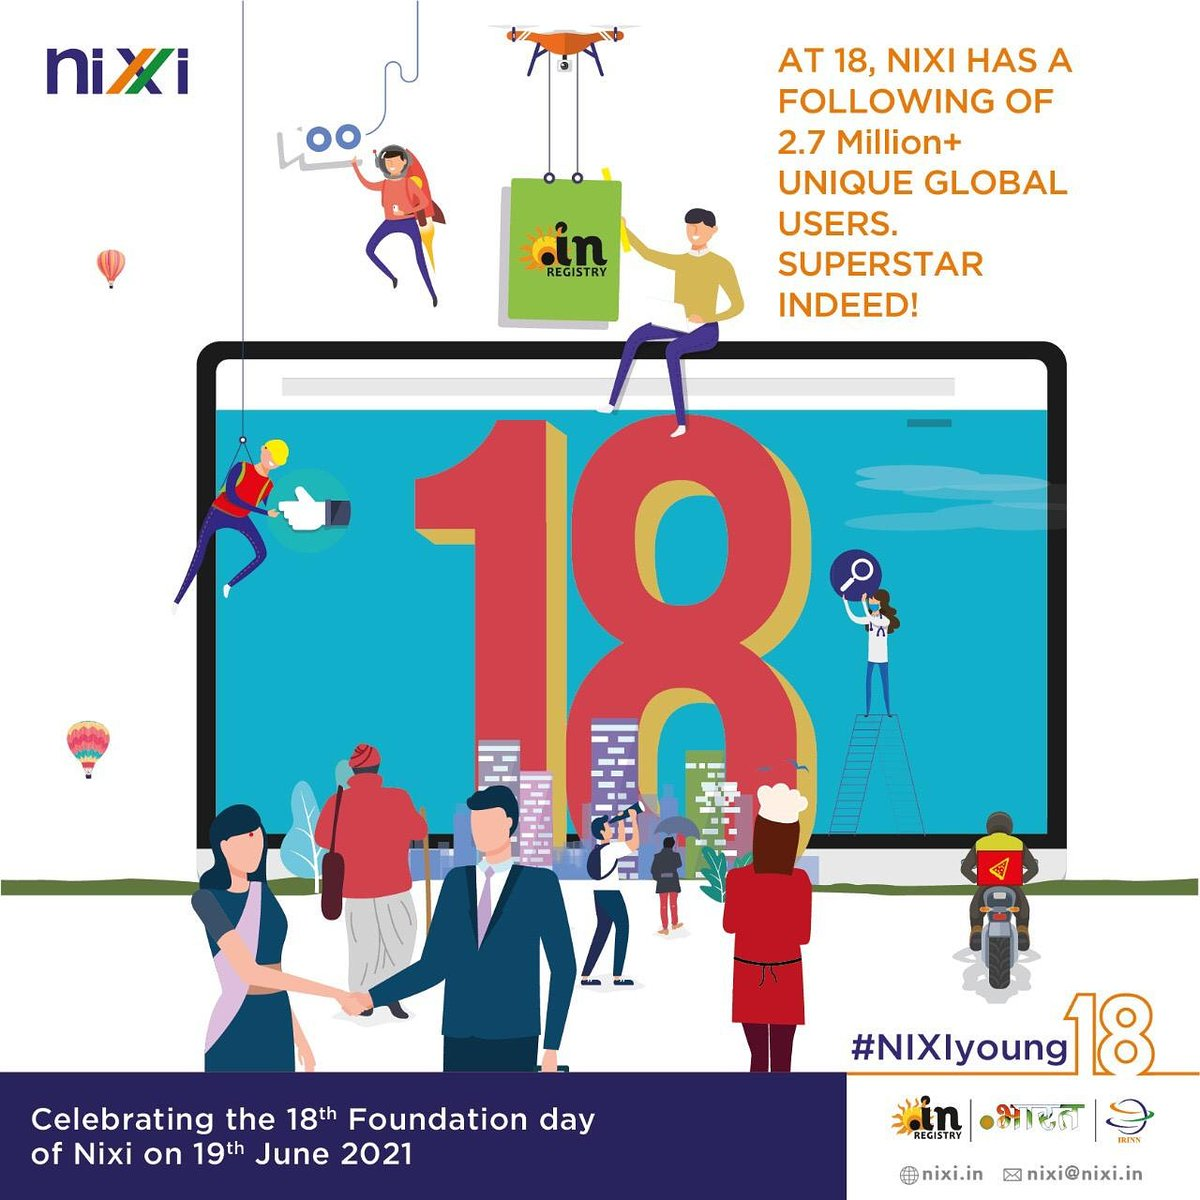 With 2.7 million + .IN domain registrations - NIXI is happy to have such a large family to celebrate with. #NIXIyoung18  https://t.co/4fU6LWjw9e   #business #celebration #dotin #growth #18years #leadership #success #goals #milestone #achievment #opportunity #entrepreneur https://t.co/iAty9rDePp